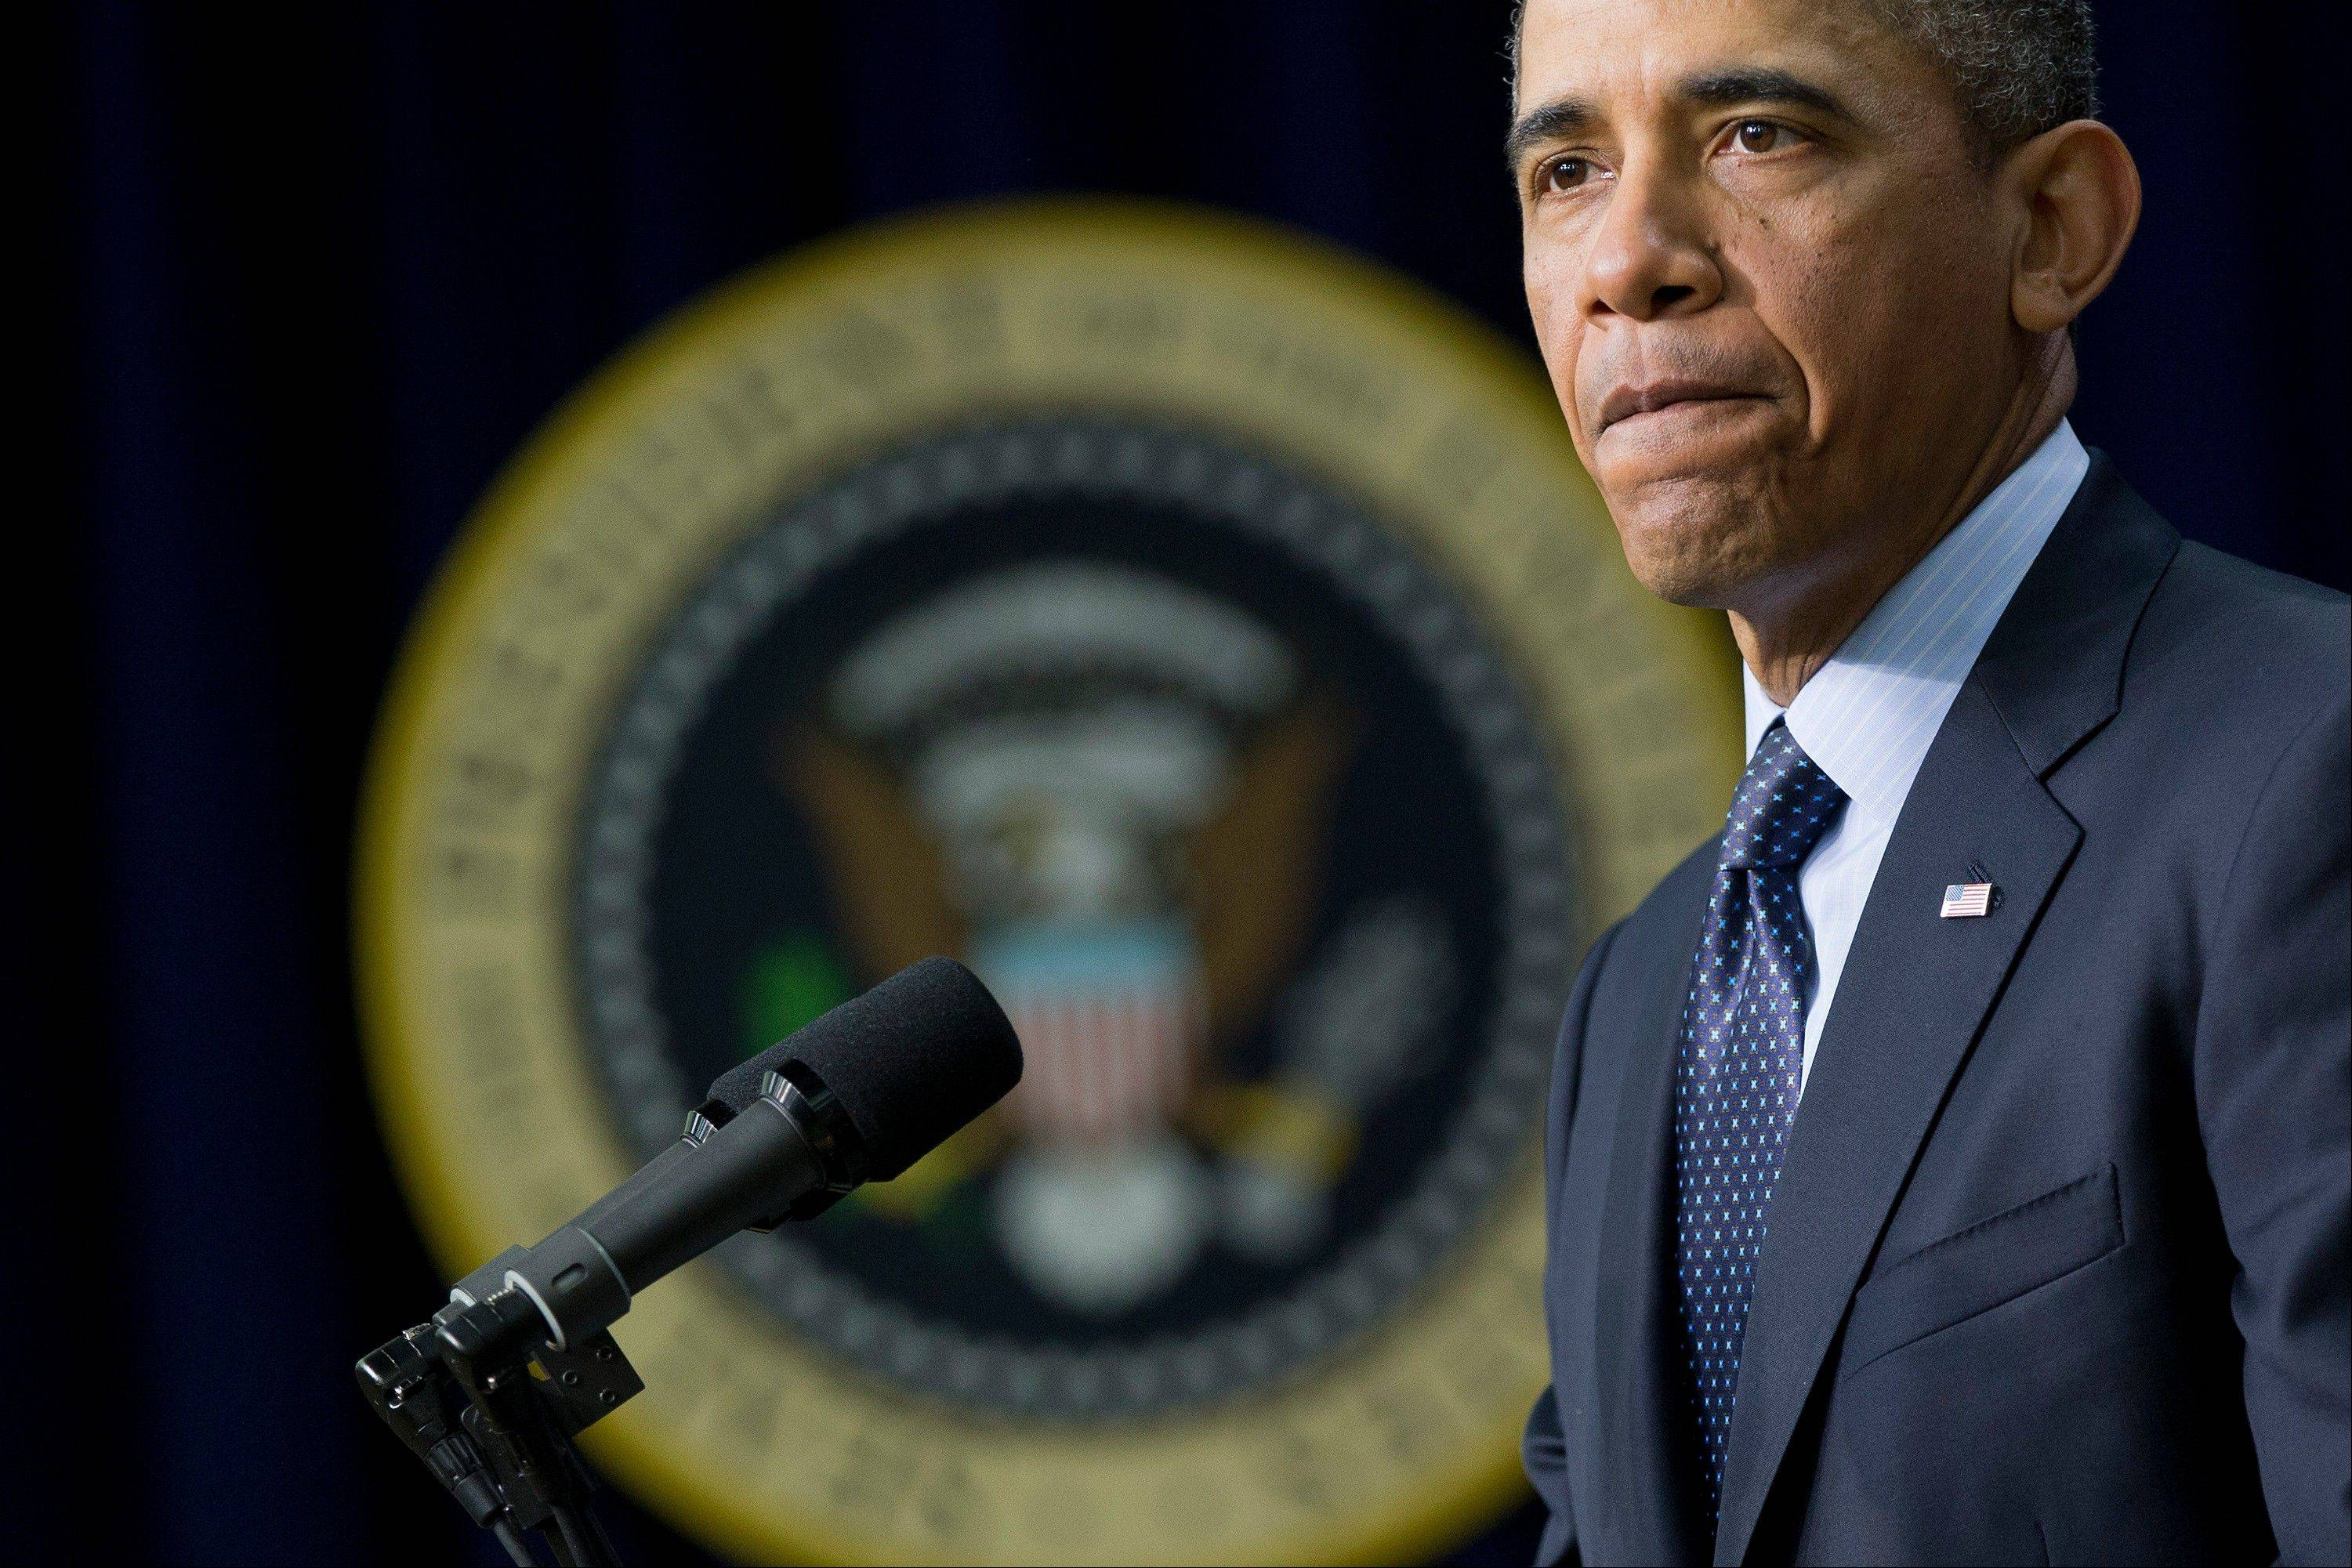 U.S. President Barack Obama stepped up pressure on Congress to avert �brutal� automatic $1.2 trillion in budget cuts set to kick in March 1, saying it would harm the economy and curtail vital services.